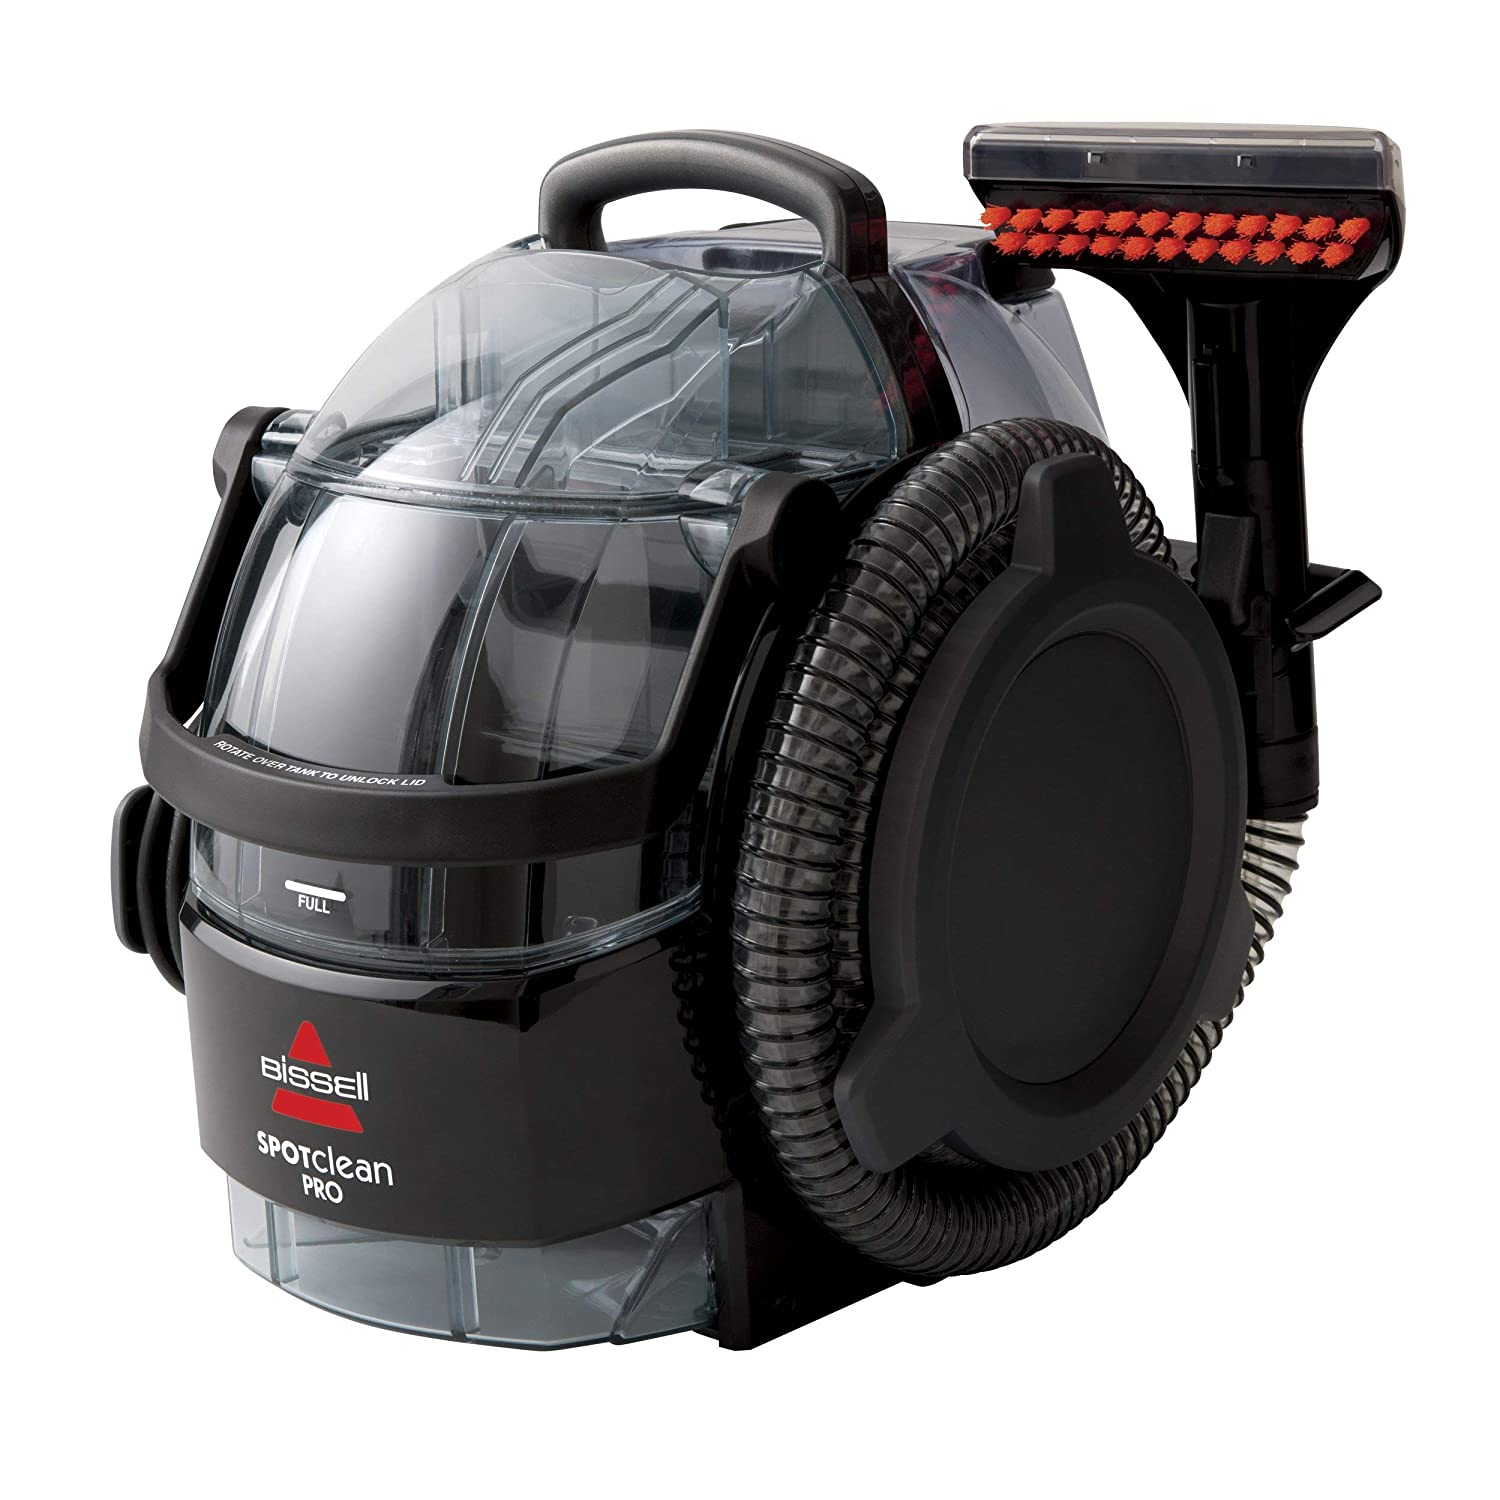 Bissell Portable Carpet Cleaner 3624 Home Appliances